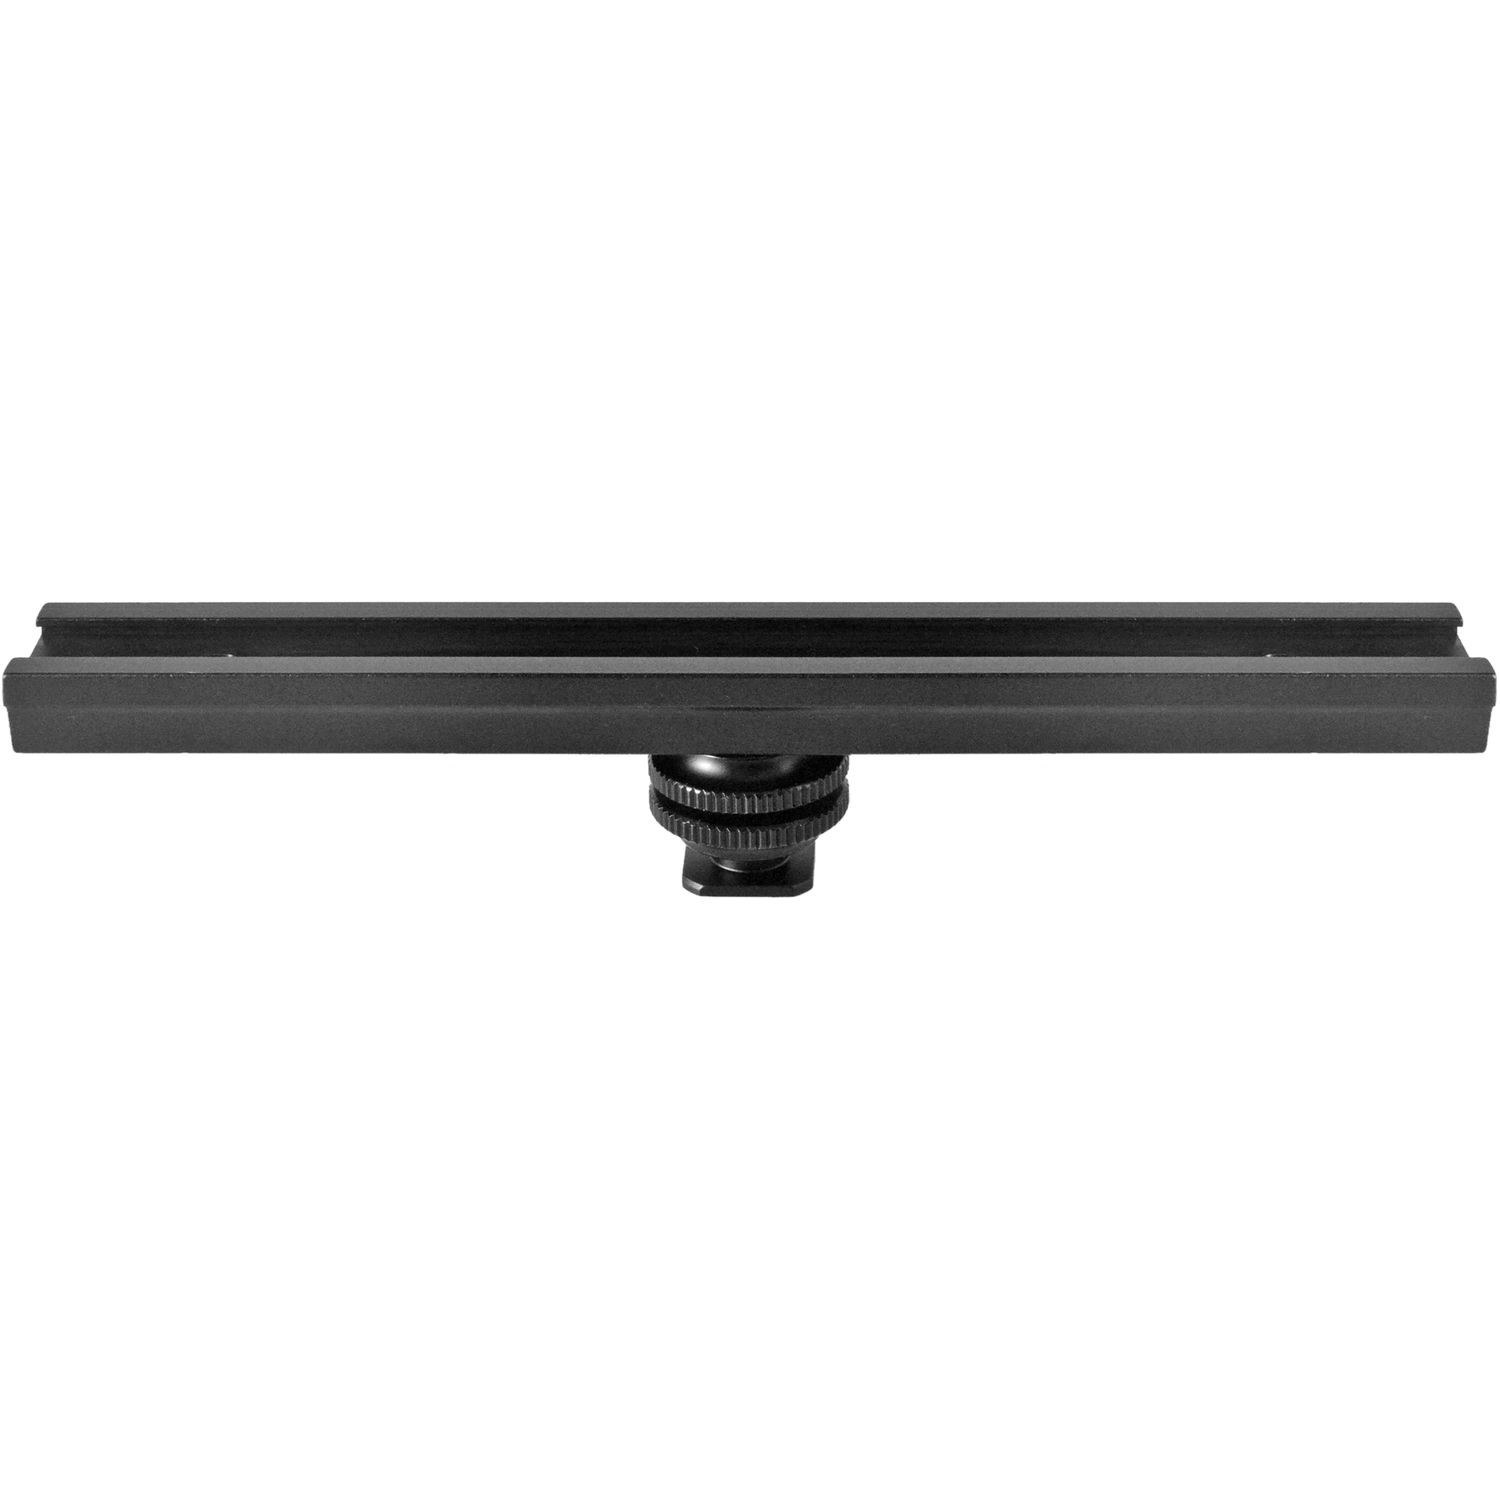 Tether Tools RapidMount Accessory Extension Bar-818307010550-RSEX8